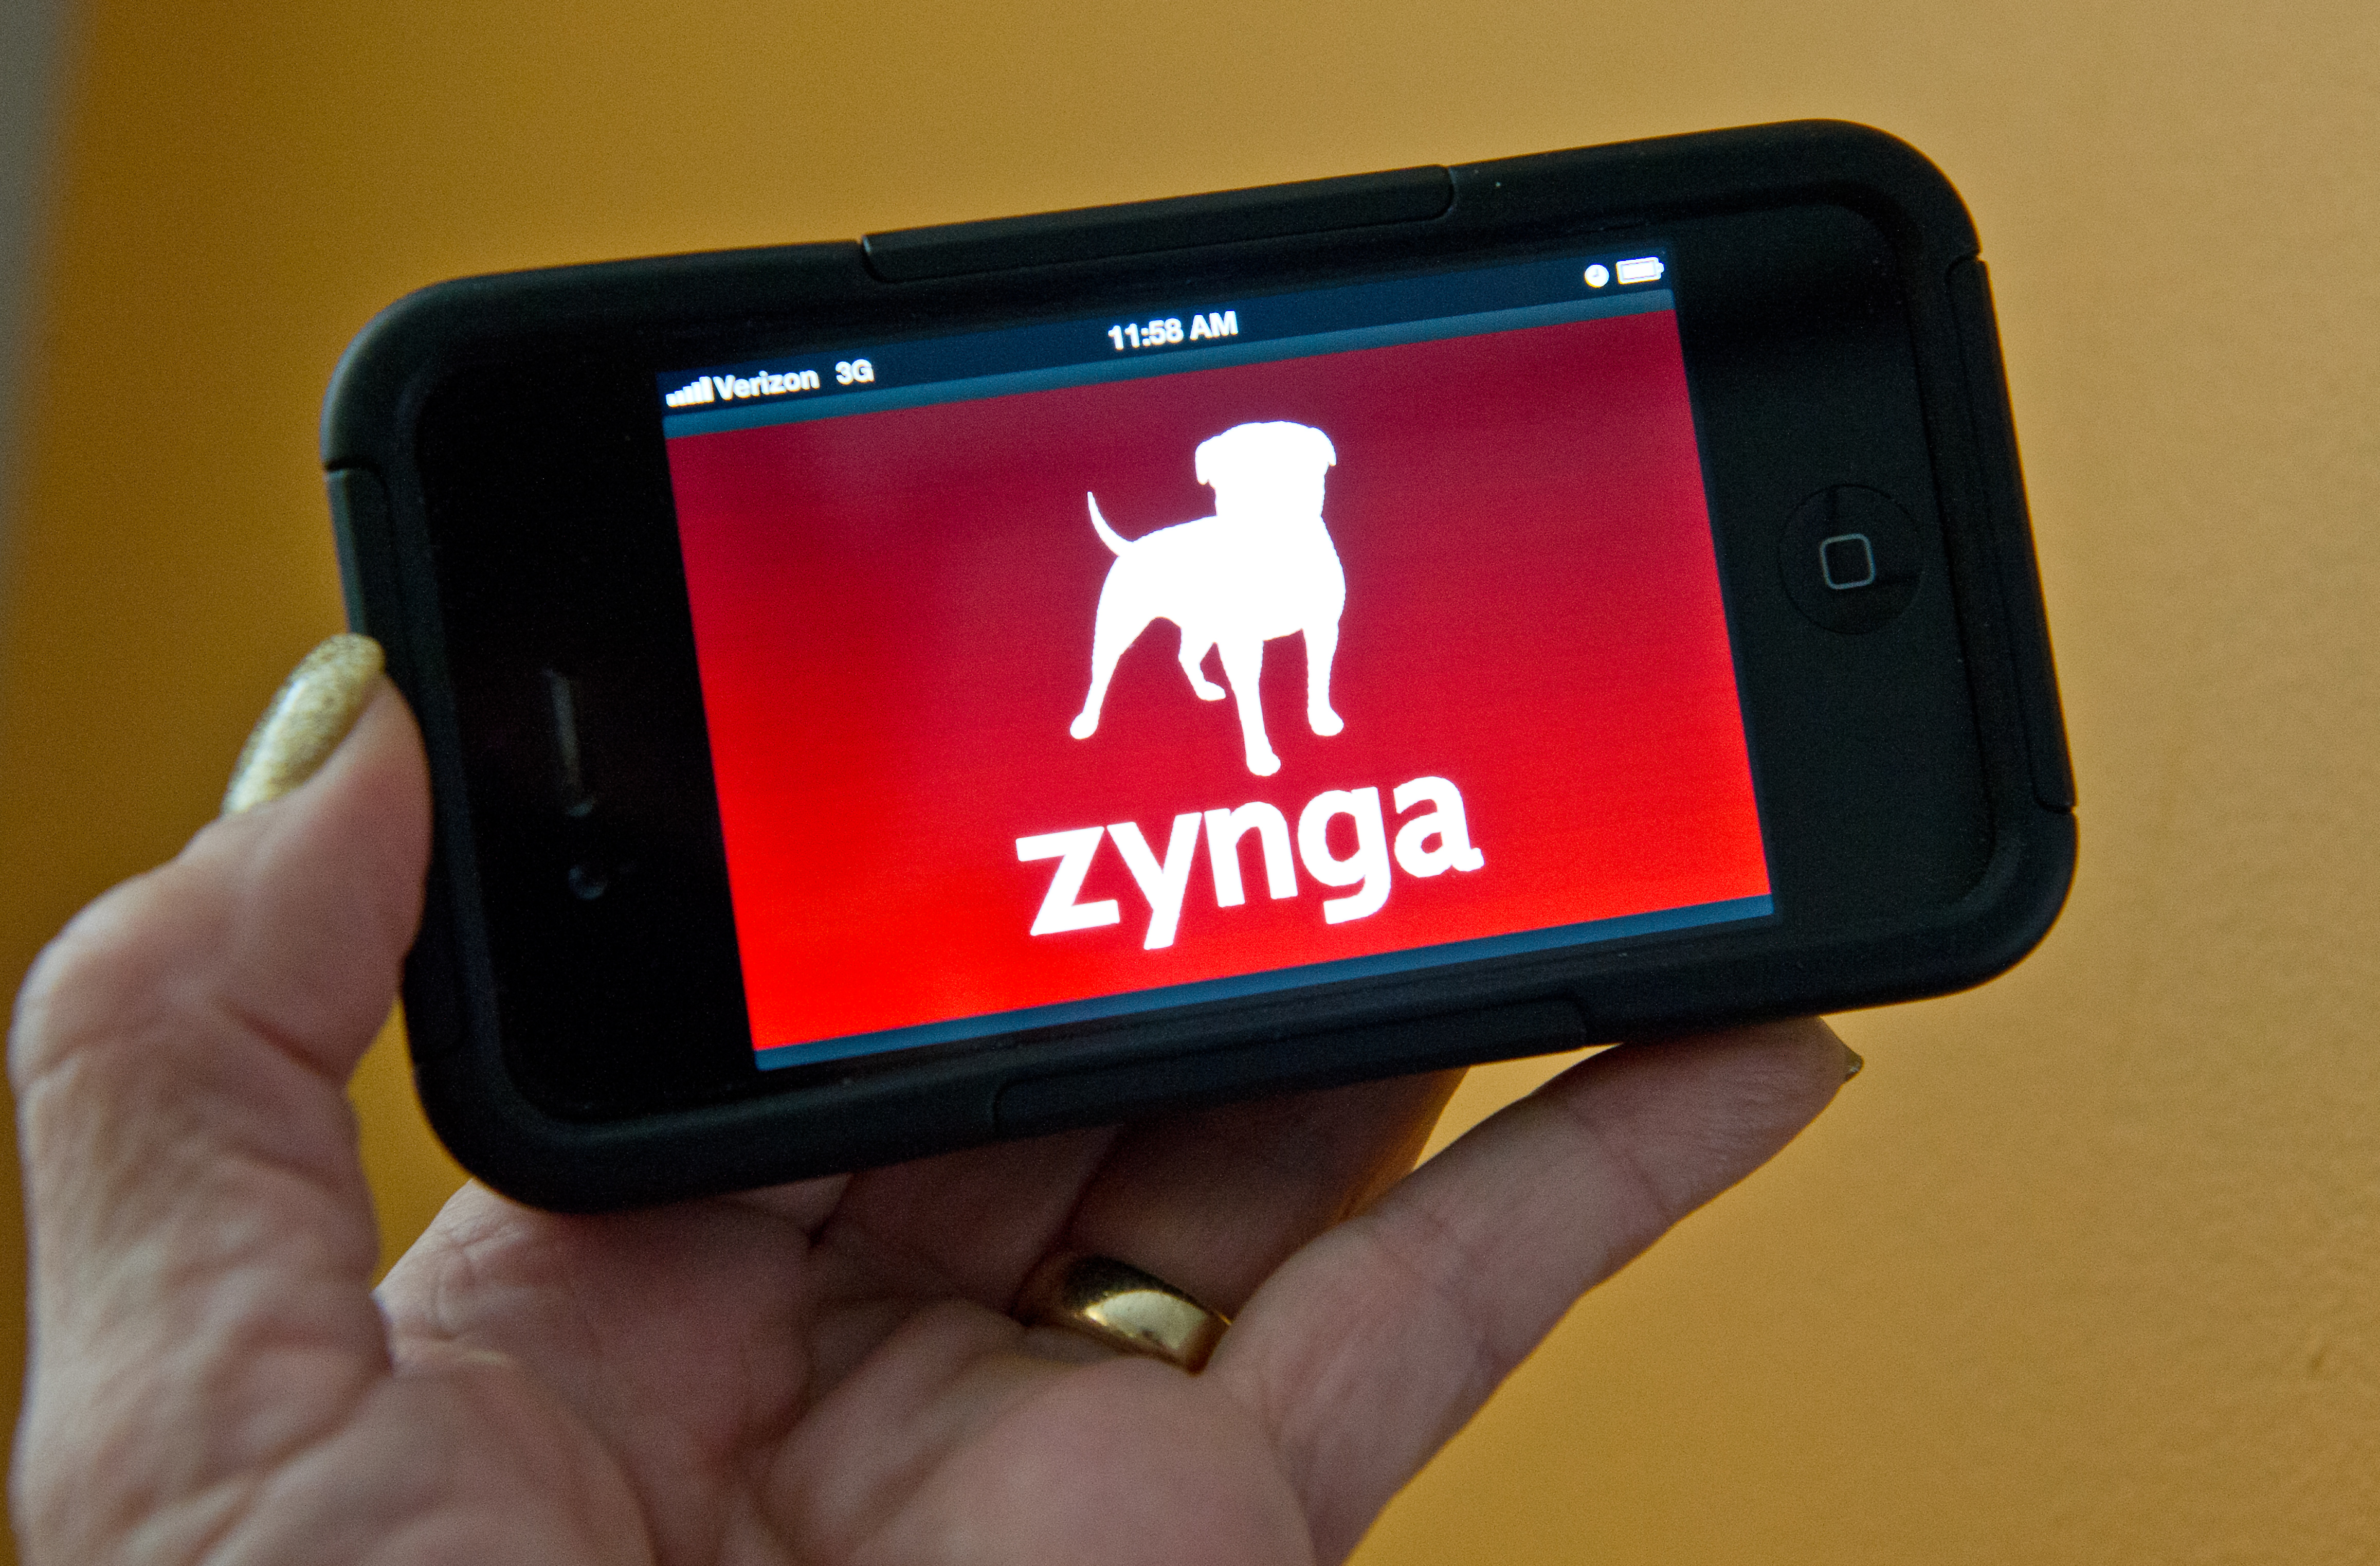 Zynga seeks new harvest with mobile FarmVille game